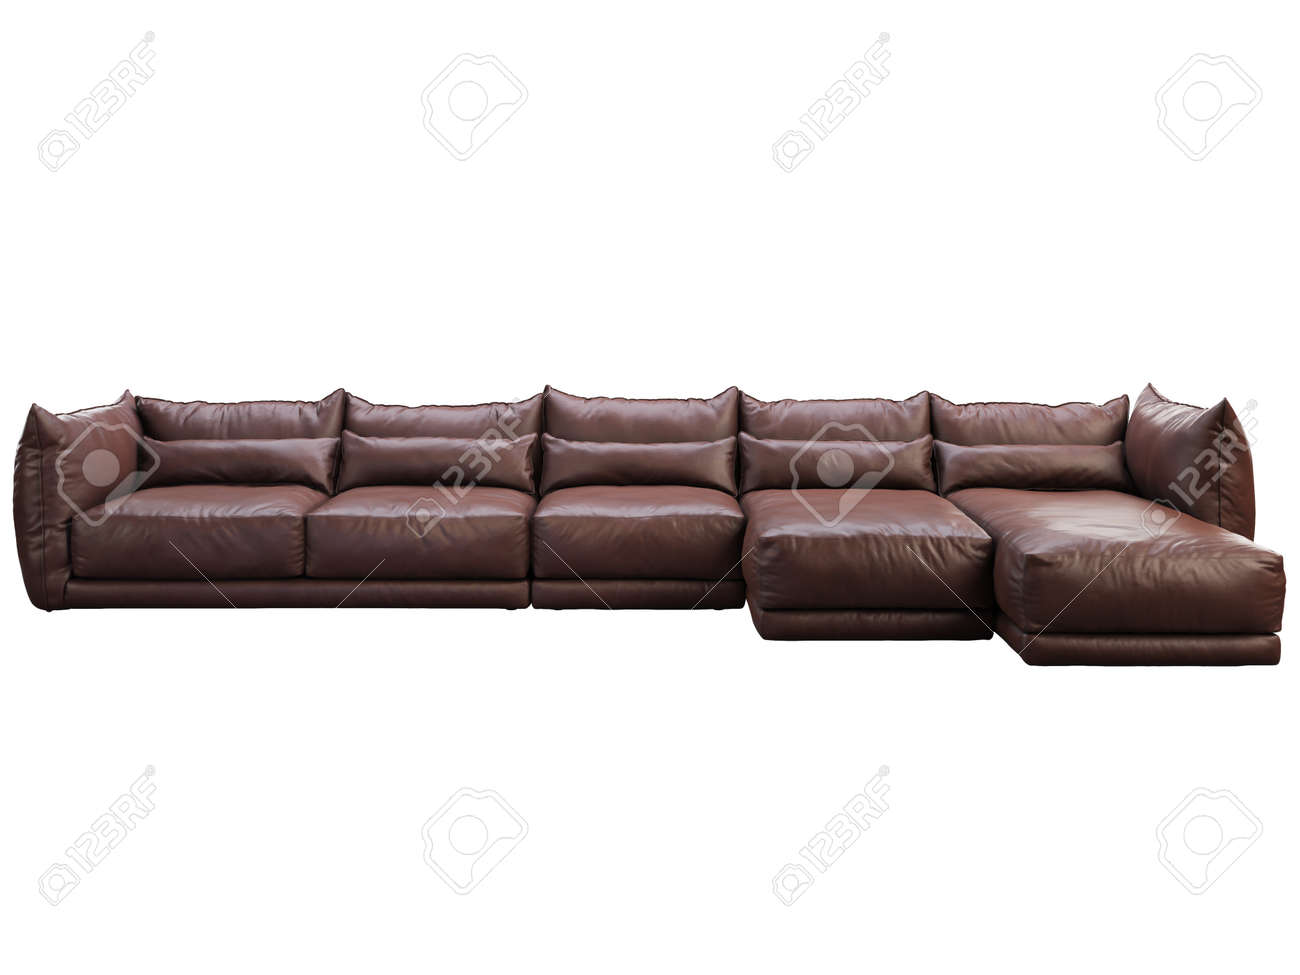 - Modern Huge Brown Corner Leather Sofa With Chaise Lounge. Leather